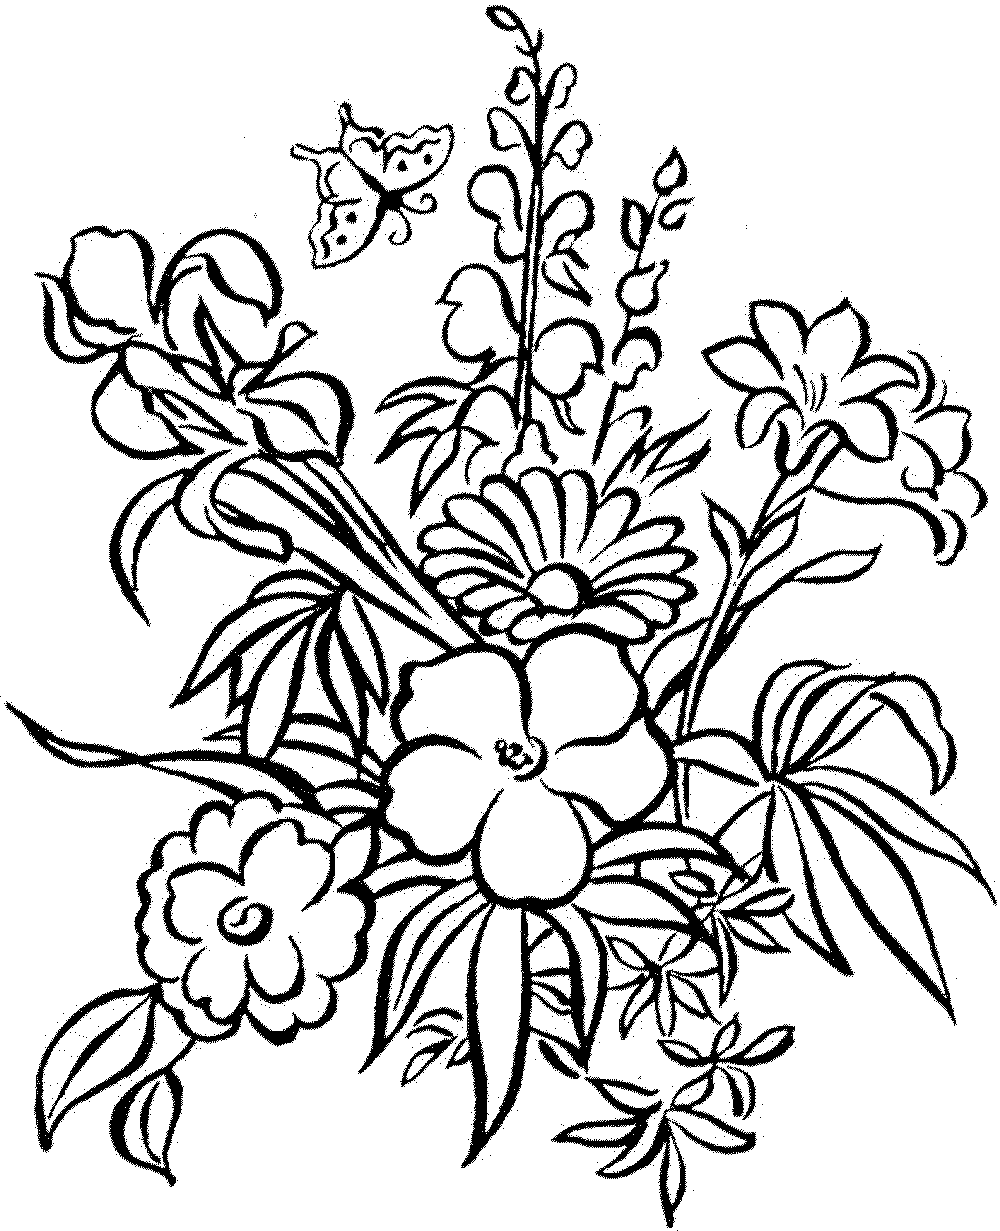 coloring pages flowers free printable flower coloring pages for kids cool2bkids pages flowers coloring 1 1